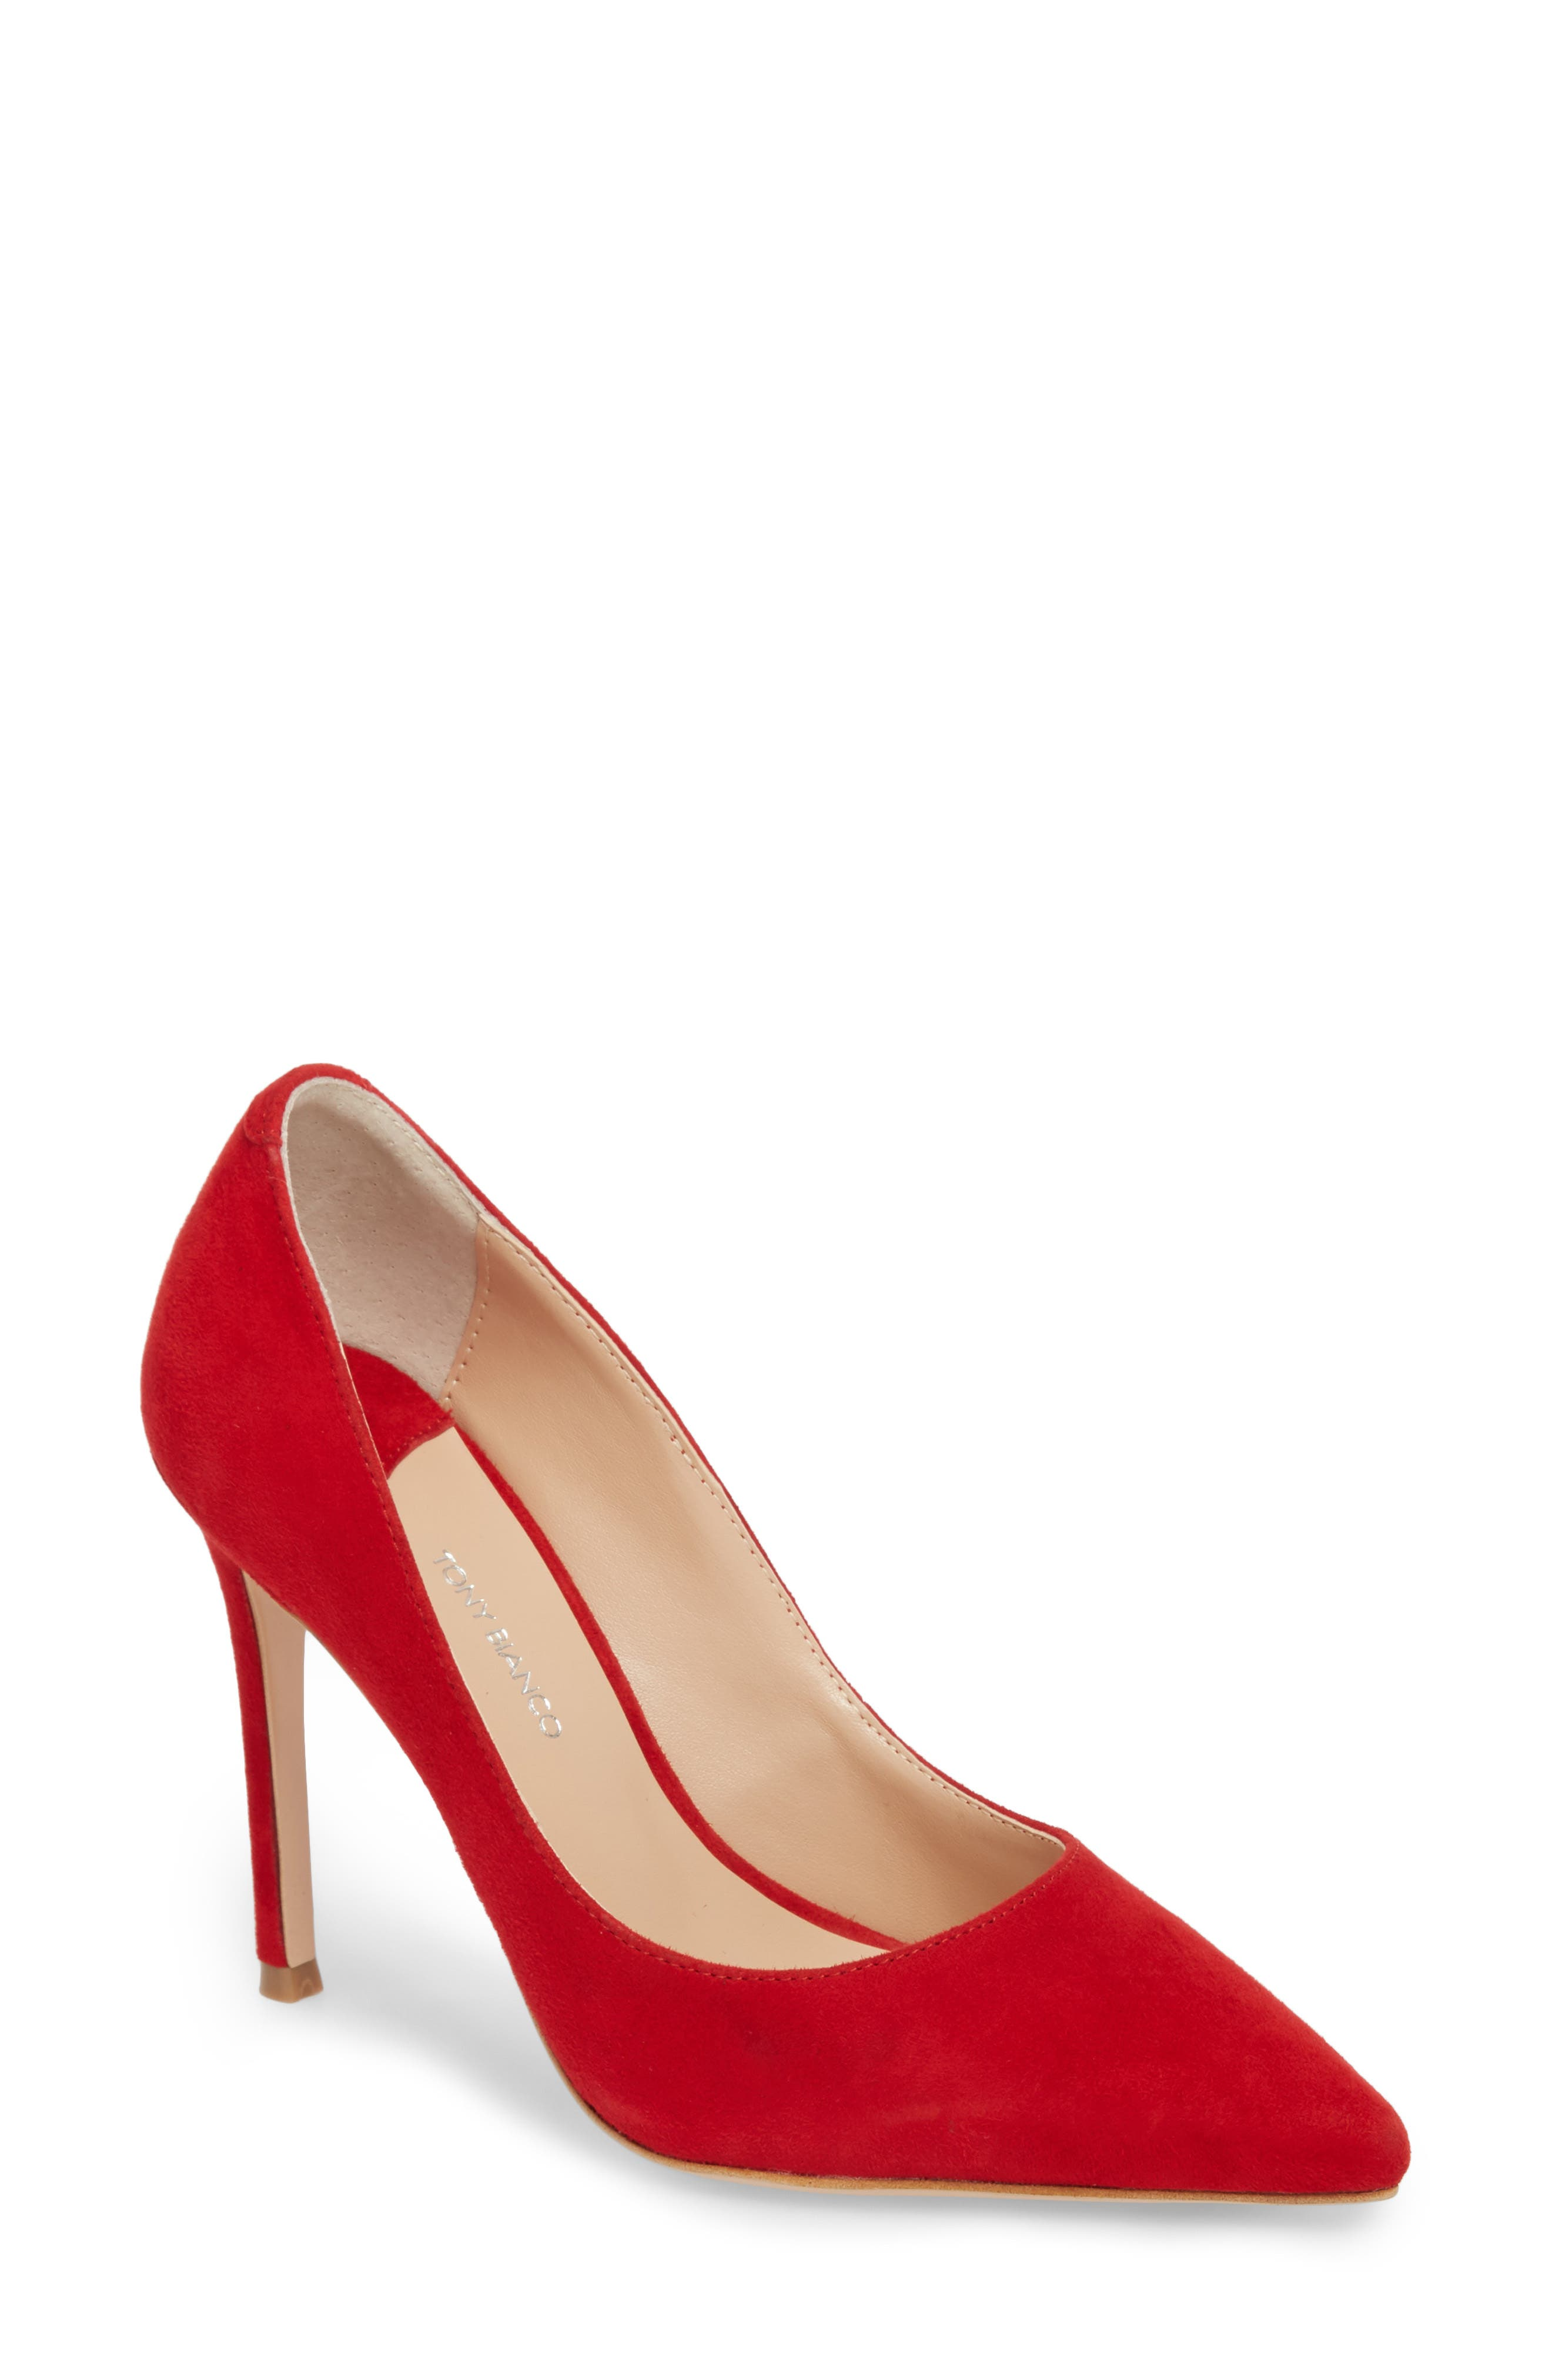 Lotus Pointy Toe Pump,                             Main thumbnail 1, color,                             FIRE SUEDE